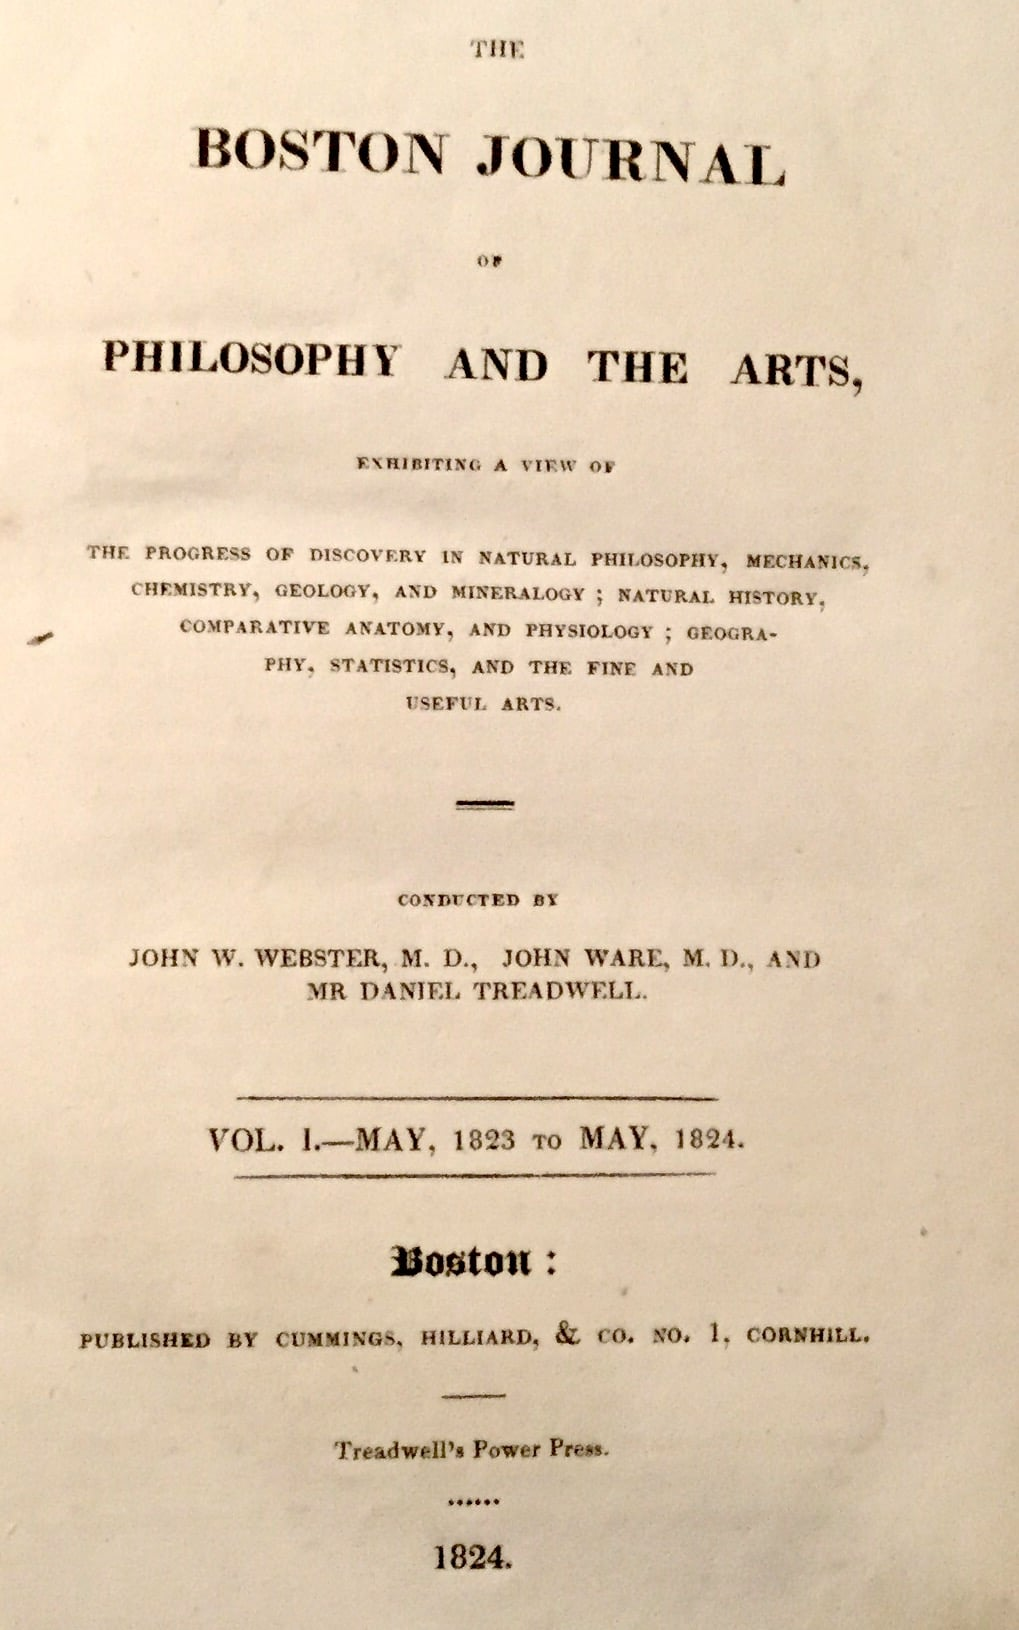 Boston Journal of Philosophy and the Arts